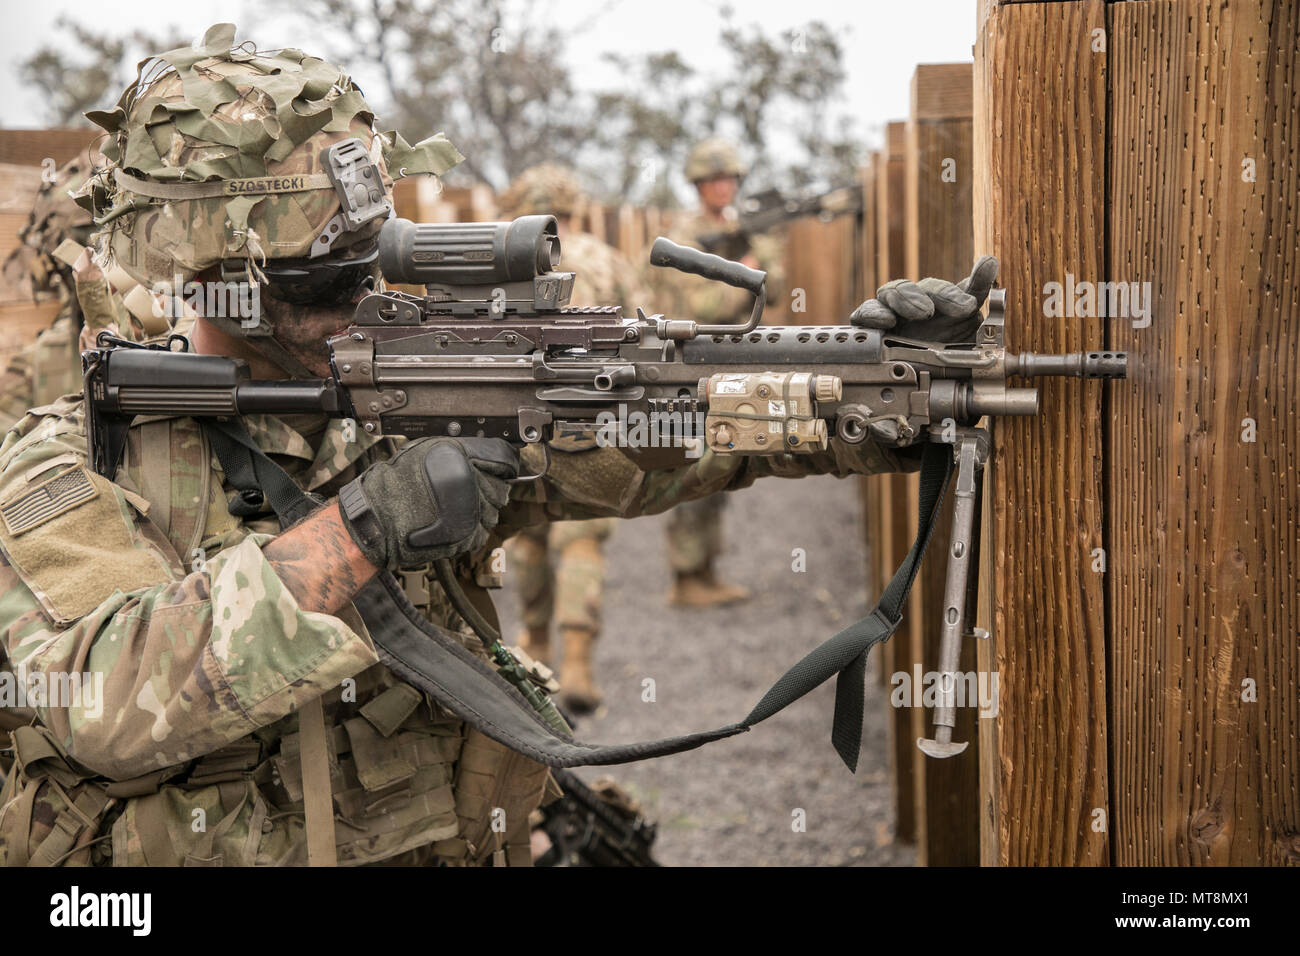 U.S. Army Trooper assigned to 2nd Squadron, 14th Calvary Regiment, 2nd Infantry Brigade Combat Team, 25th Infantry Division returns fire with an M249 Squad Automatic Weapon during a Combined Arms Live Fire Exercise (CALFEX) at Pohakuloa Training Area, Hawaii, May 15, 2018. The CALFEX utilizes all the enablers available to the unit in order to increase interoperability, concentrate combat power and mass effects on the objective. (U.S. Army photo by 1st Lt. Ryan DeBooy) - Stock Image